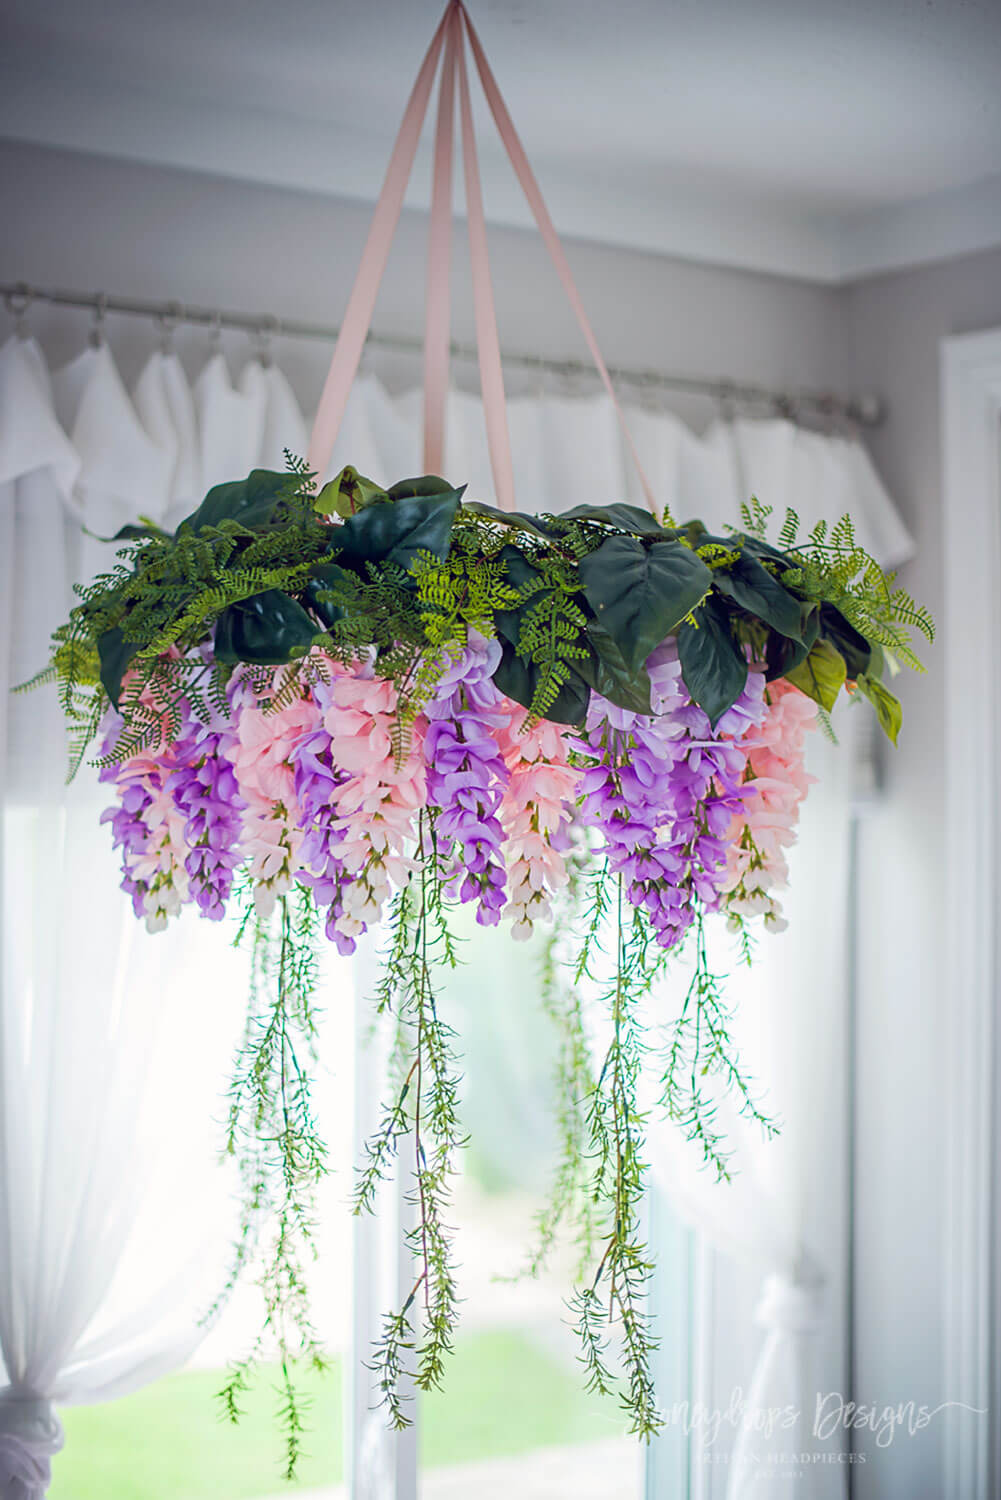 Wisteria Flower Chandelier Baby Mobile Baby Room Girl Nursery Decor - Honeydrops Designs